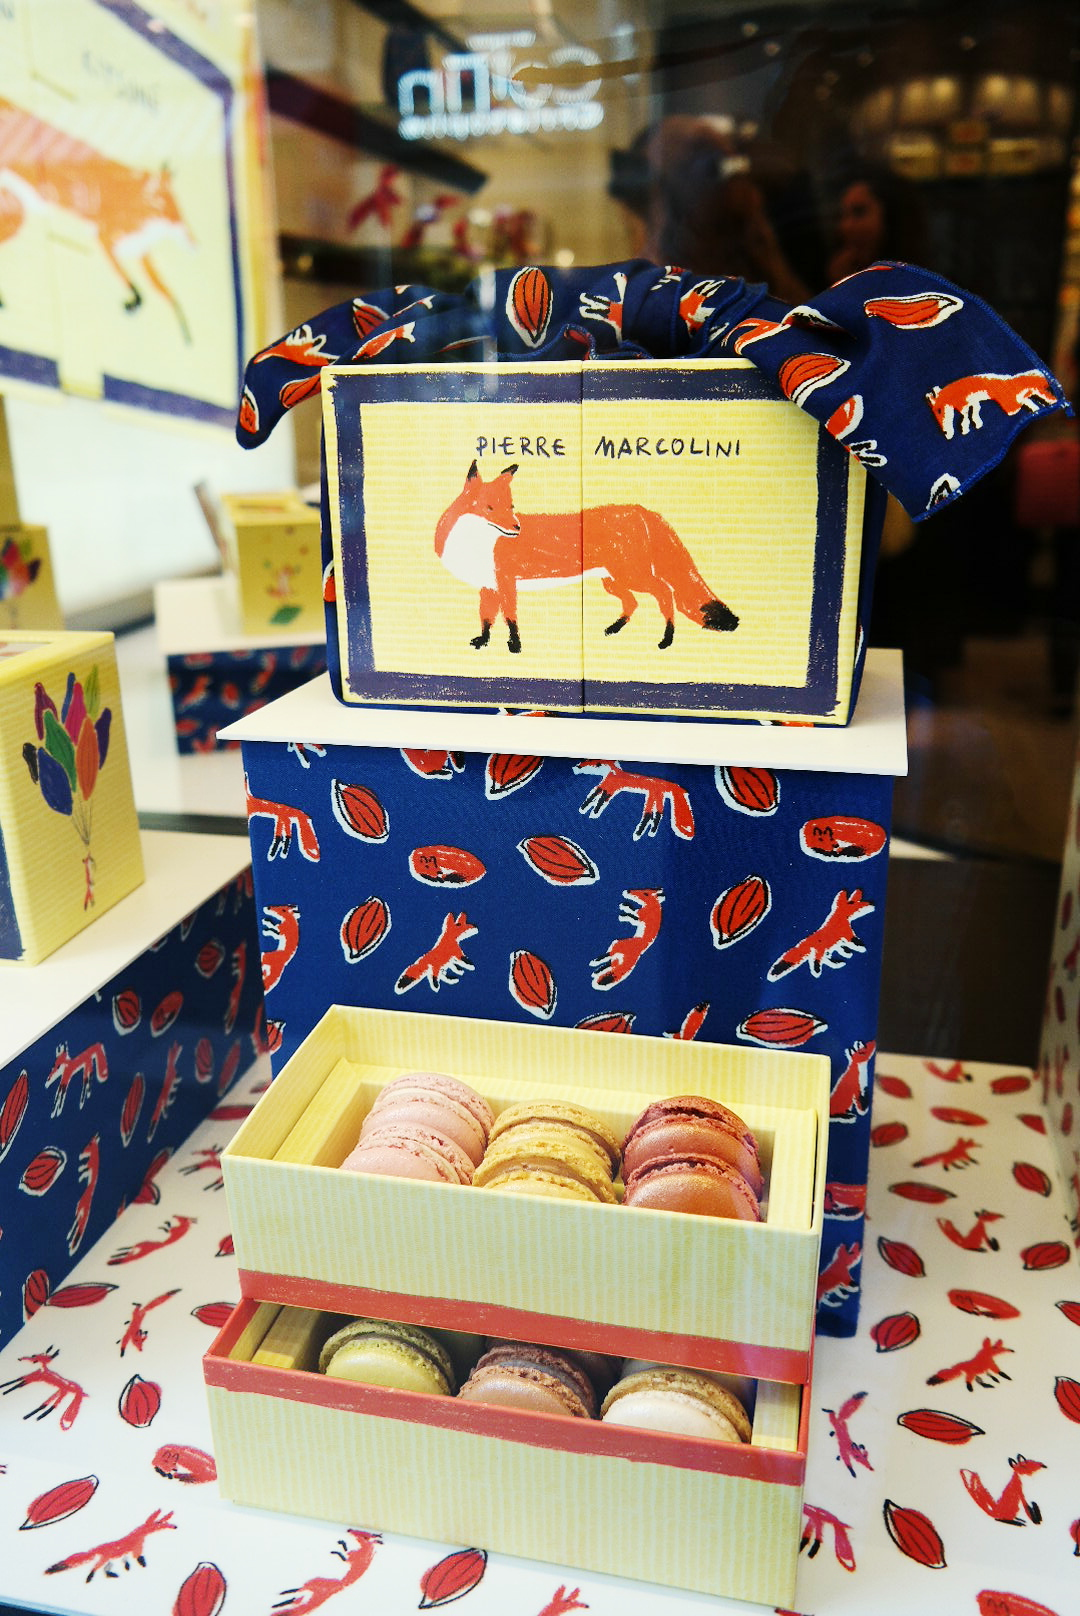 Coffret-de-macarons-exclusivité-boutique-Pierre-Marcolini-X-Maison-Kitsuné-Bento-Box-Rue-du-Bac-Sucré-événement-dégustation-patisserie-photo-by-united-states-of-paris-blog